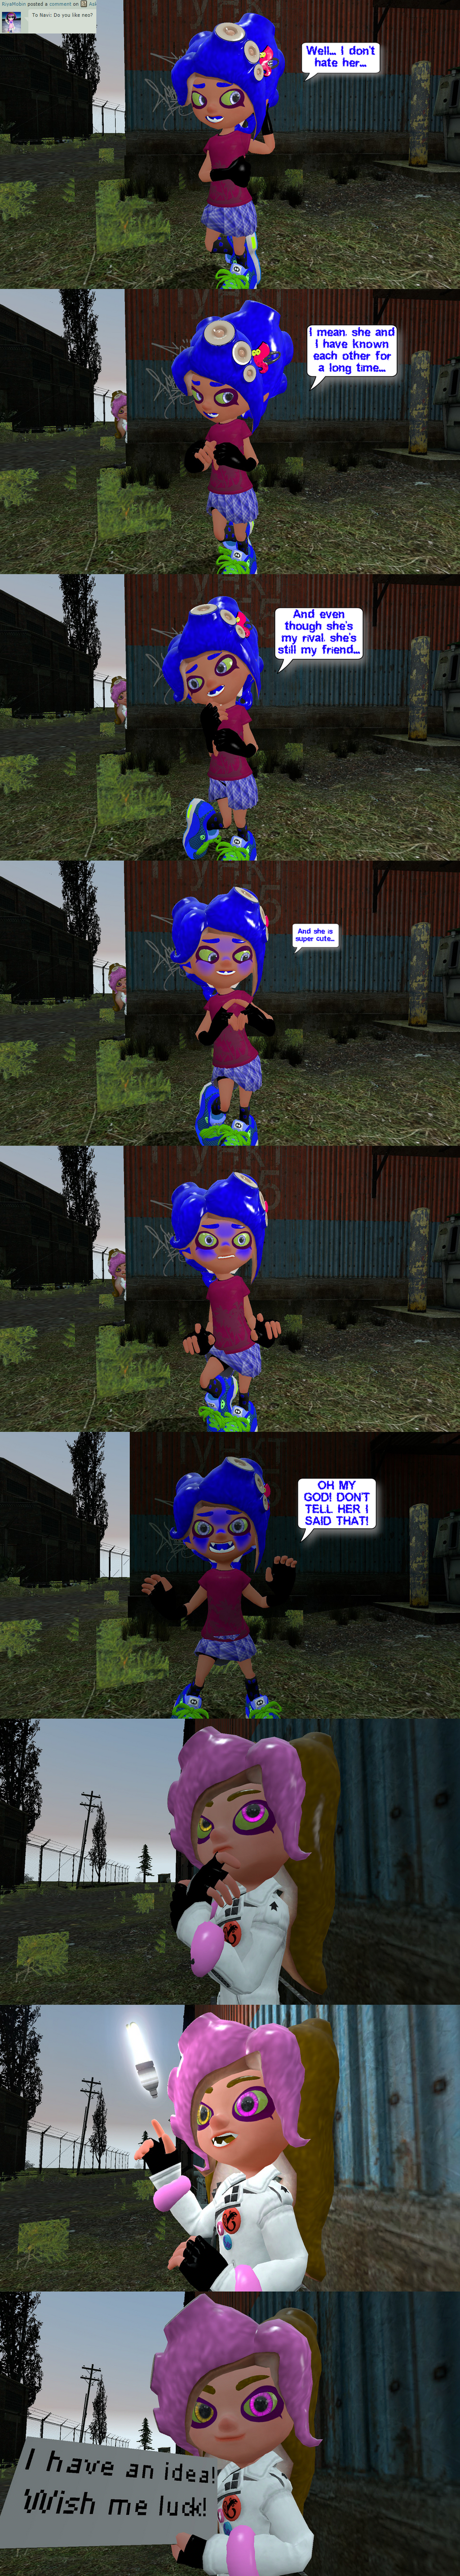 Ask the Splat Crew 1370 by DarkMario2